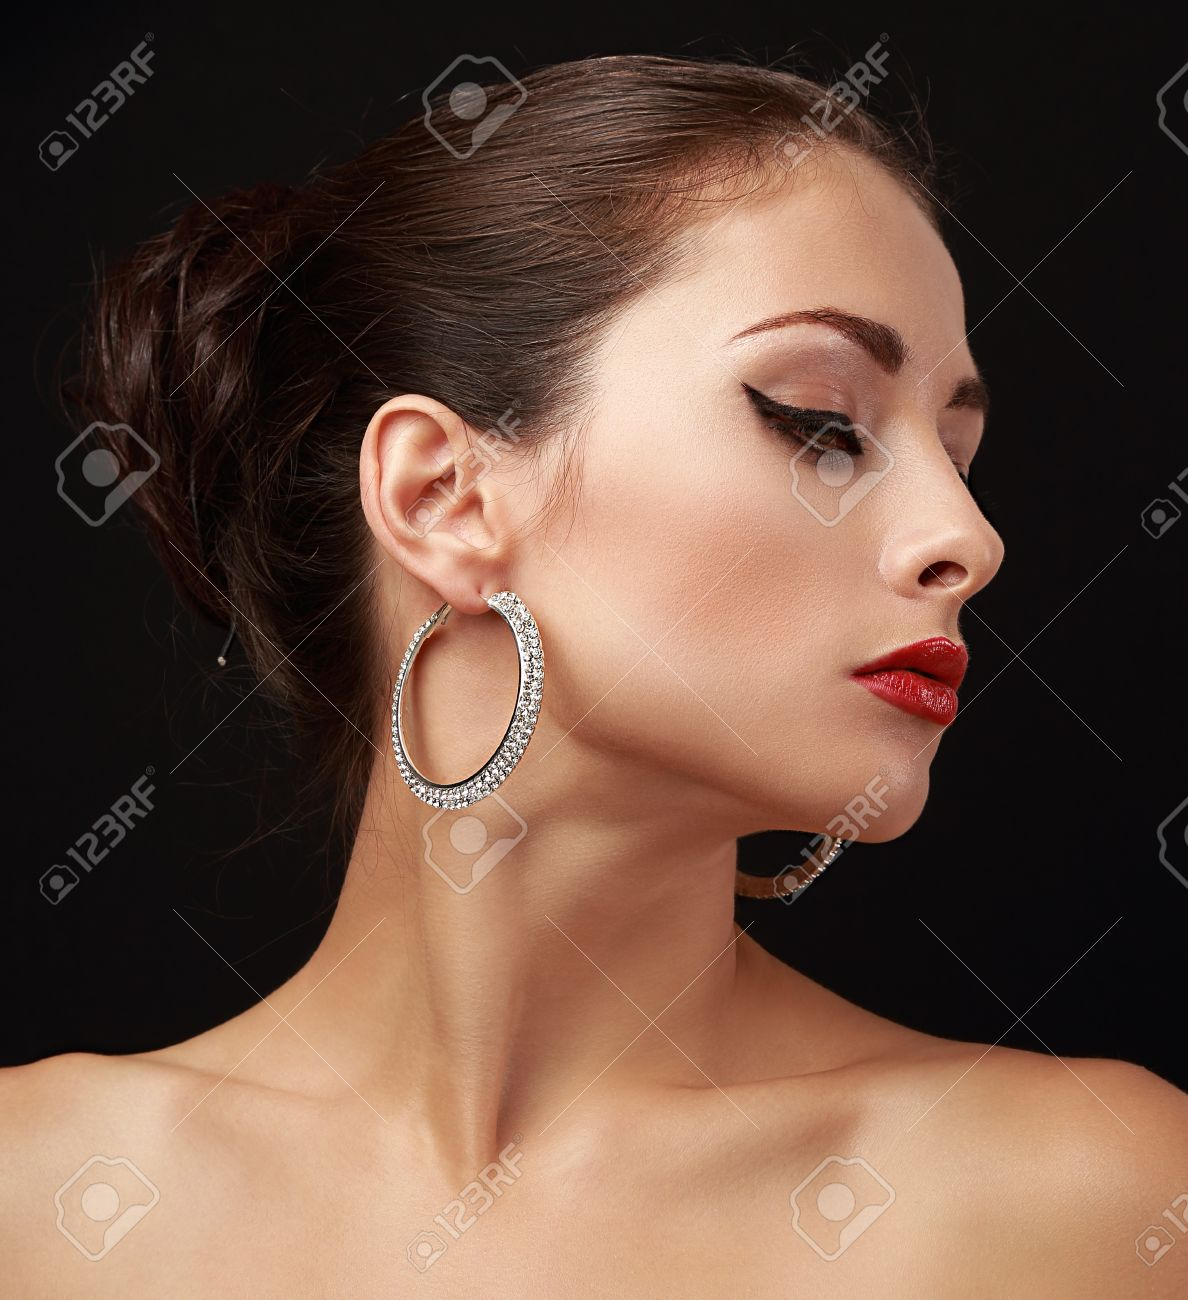 woman photo alamy gorgeous erwreb of stock portrait with earrings